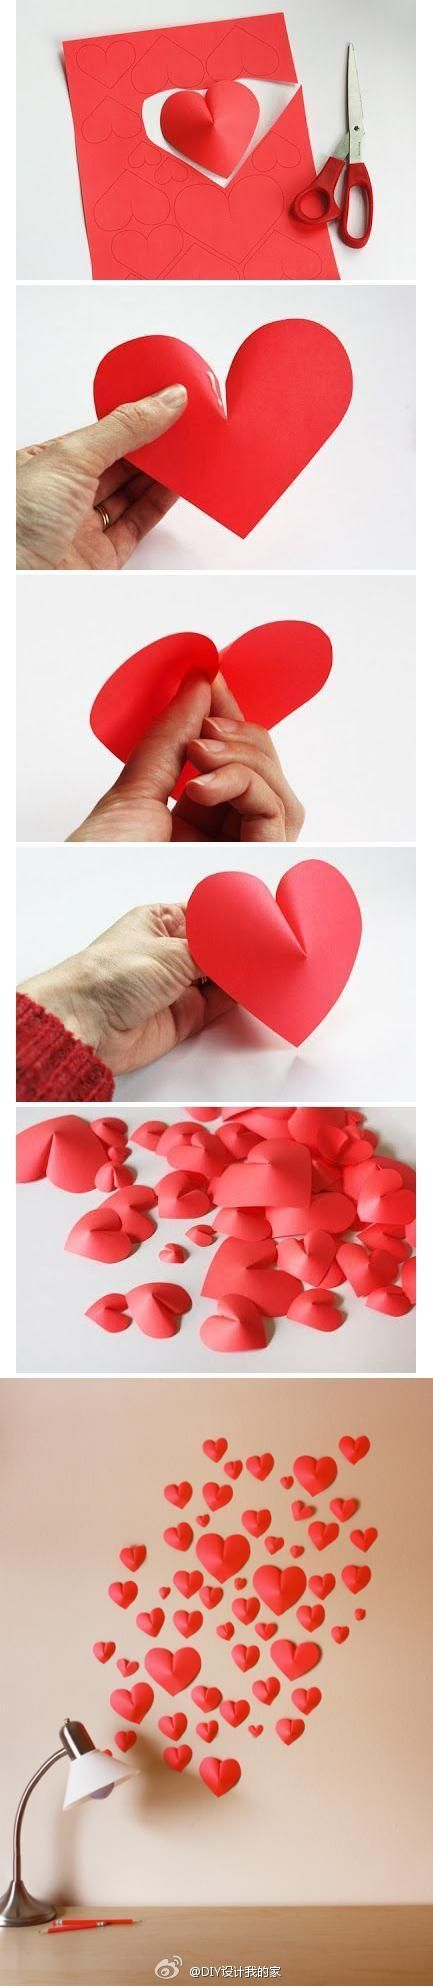 Make A 3d Paper Heart For Cute Decorations Valentine Crafts Crafts Crafty Craft